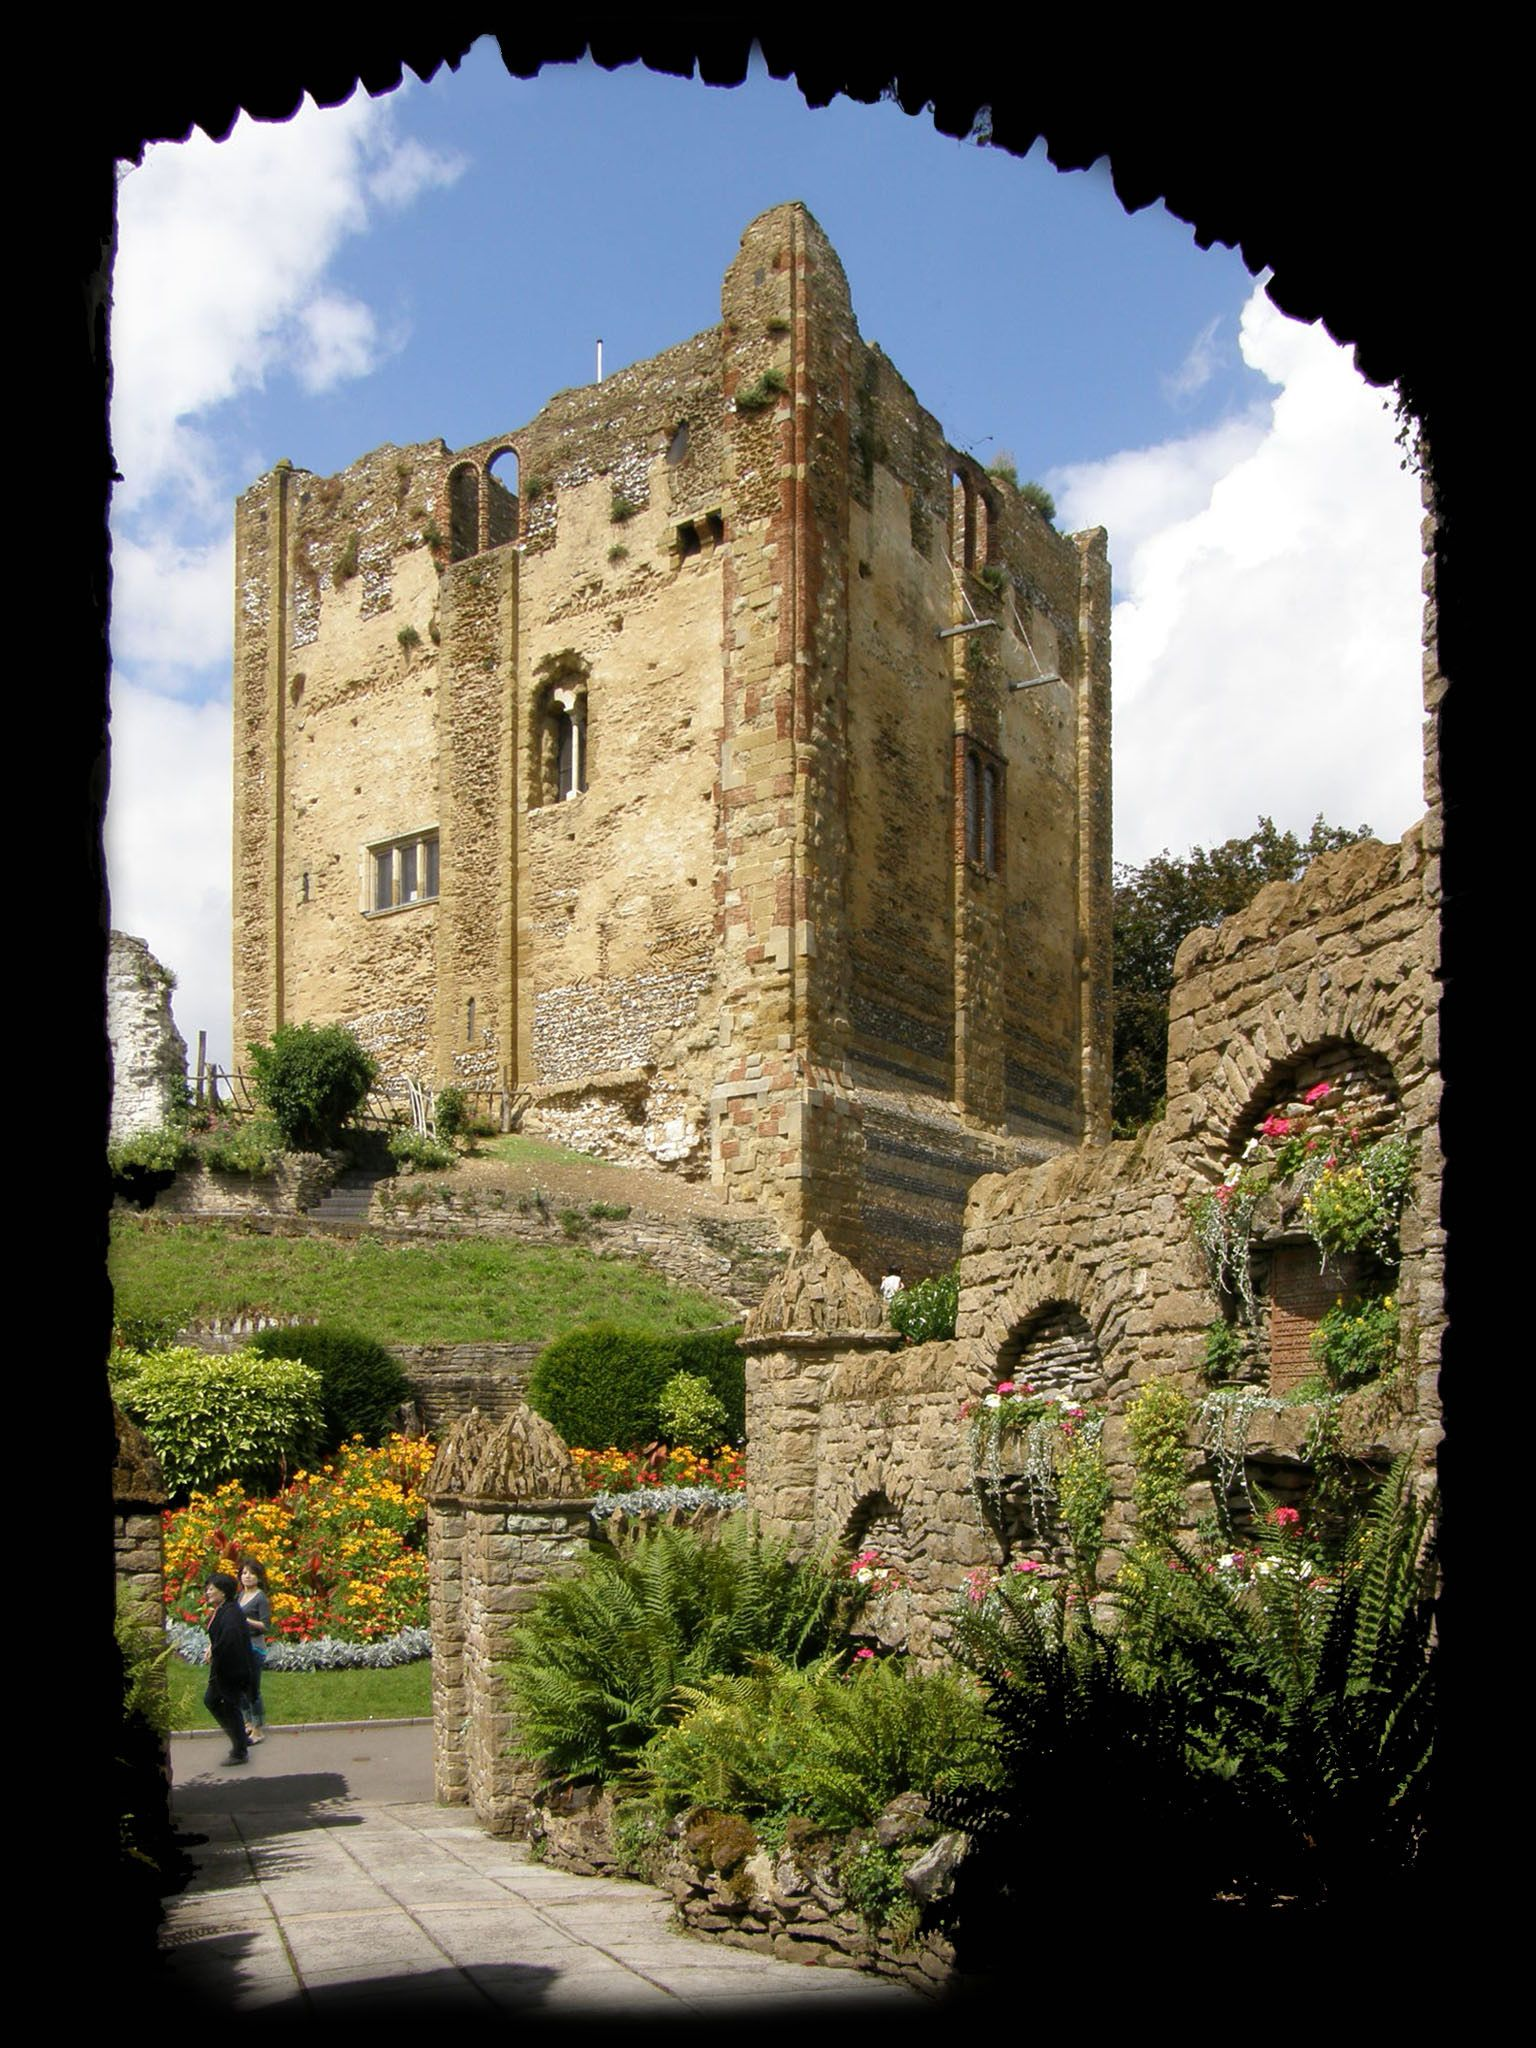 Guildford Castle and Museum Castle Arch ~ Guildford, Surrey, England